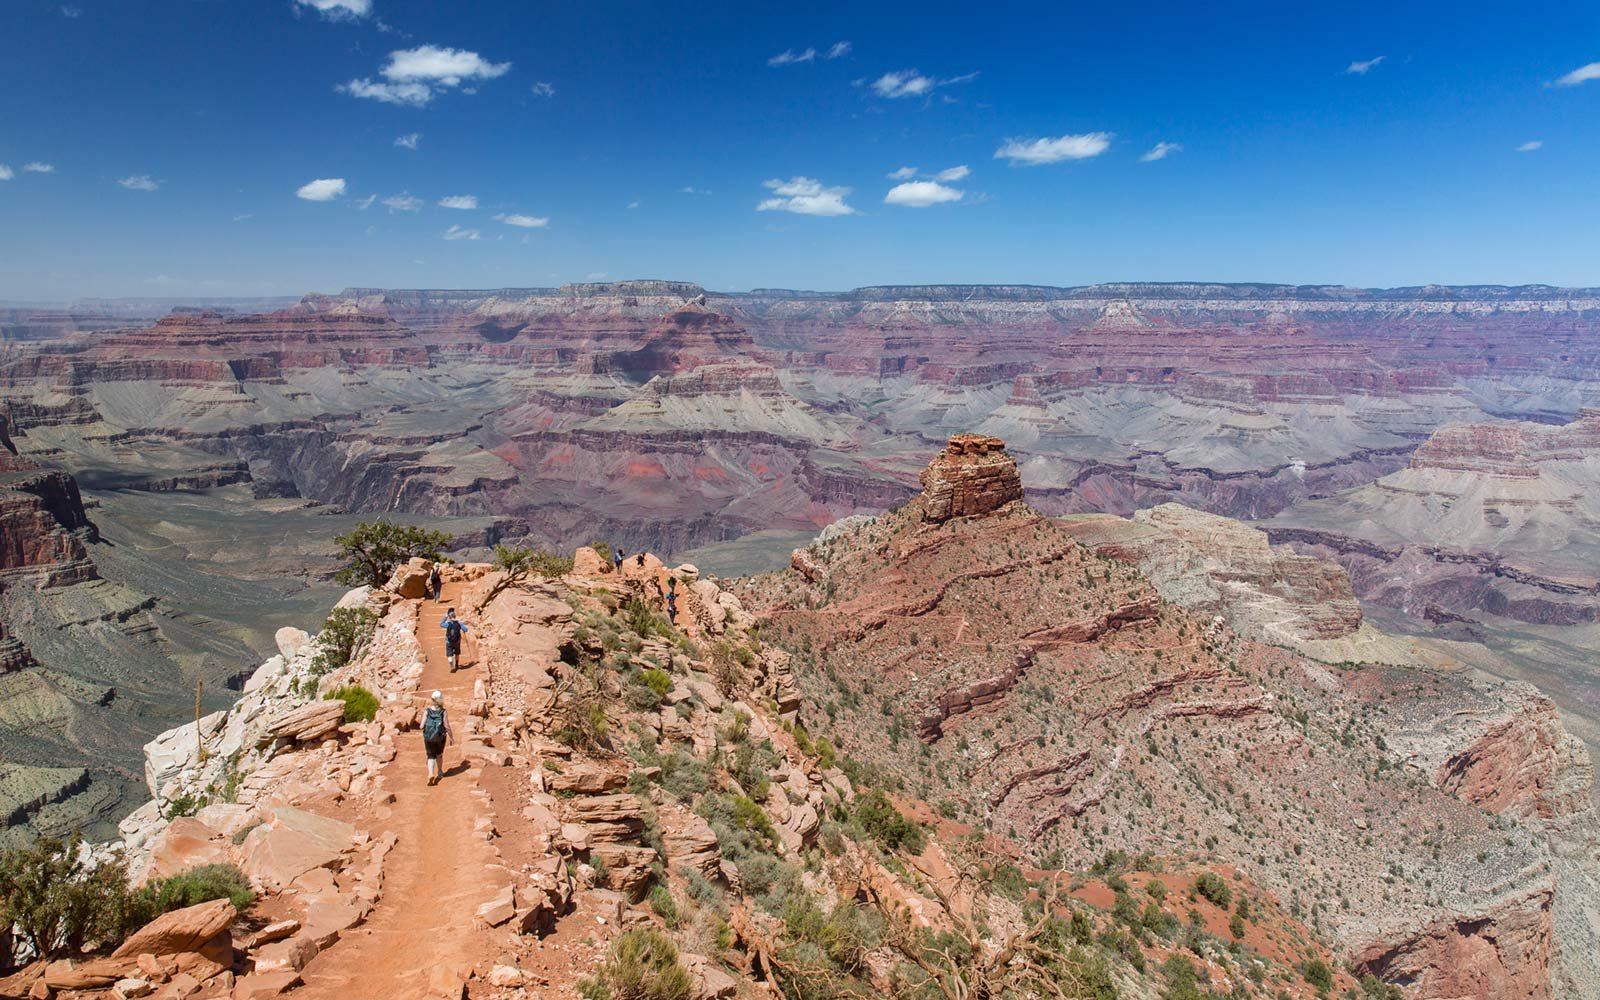 9. Grand Canyon National Park